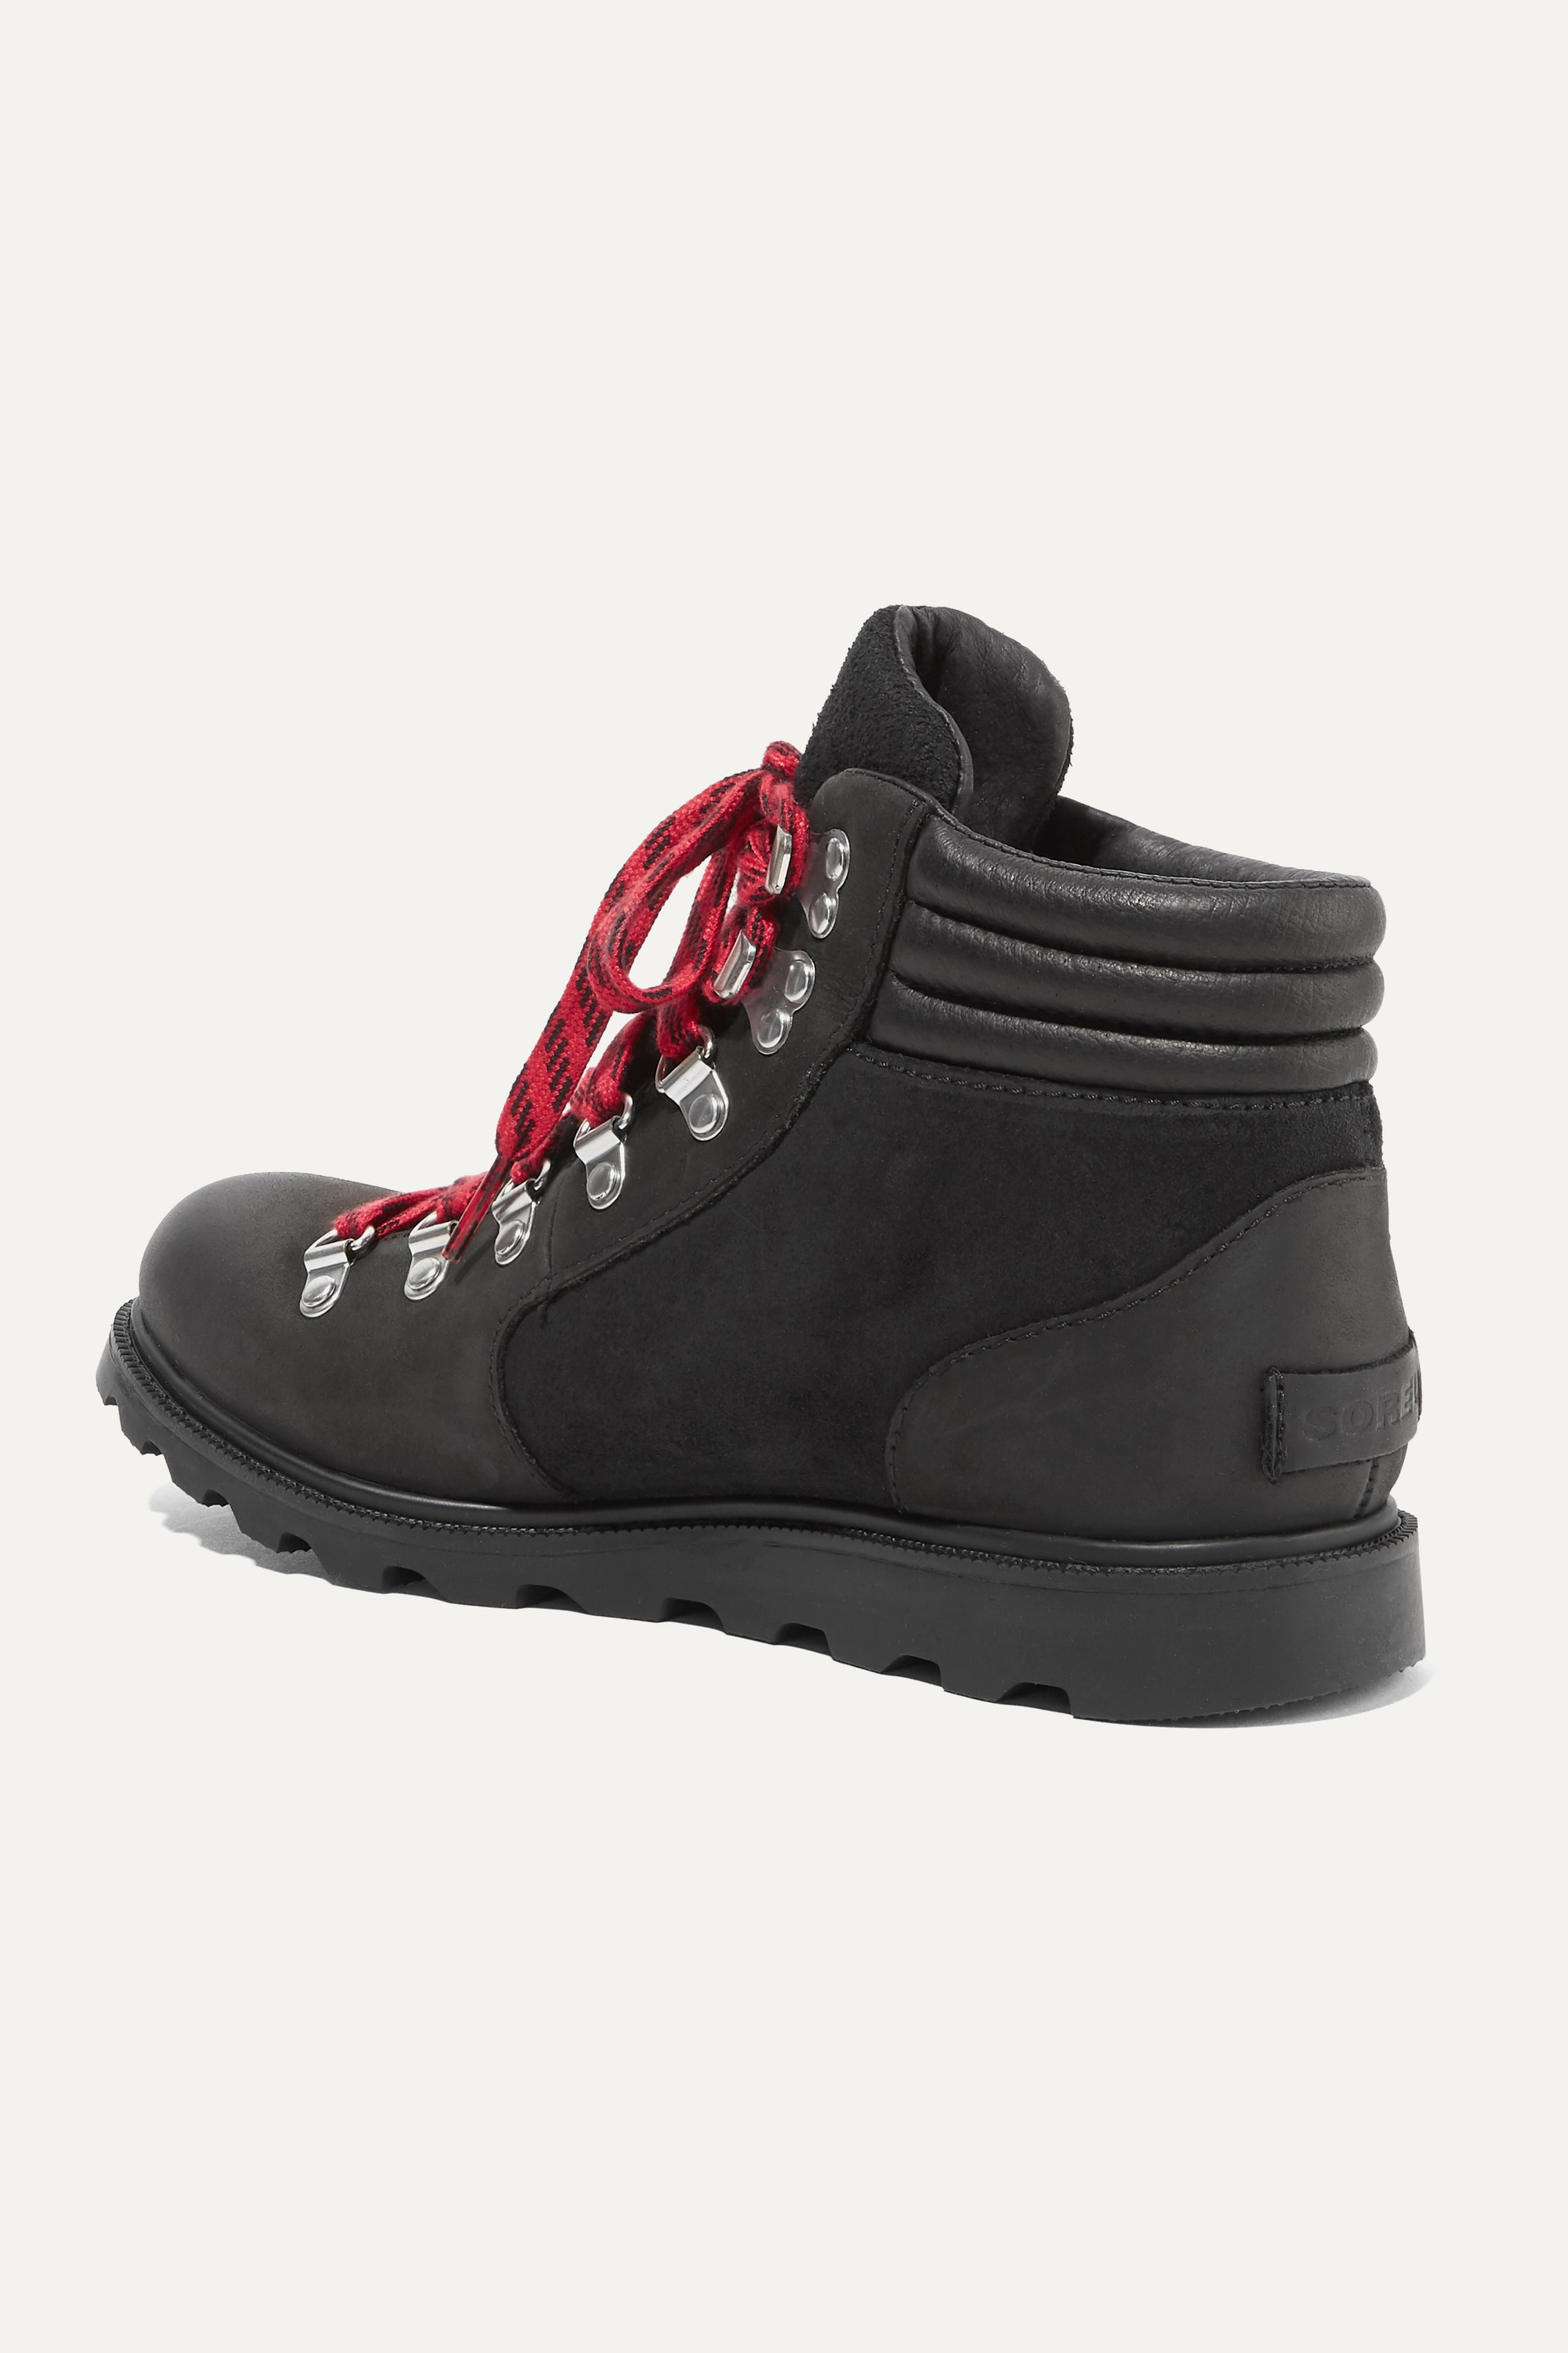 Sorel Ainsley Conquest waterproof leather and suede ankle boots